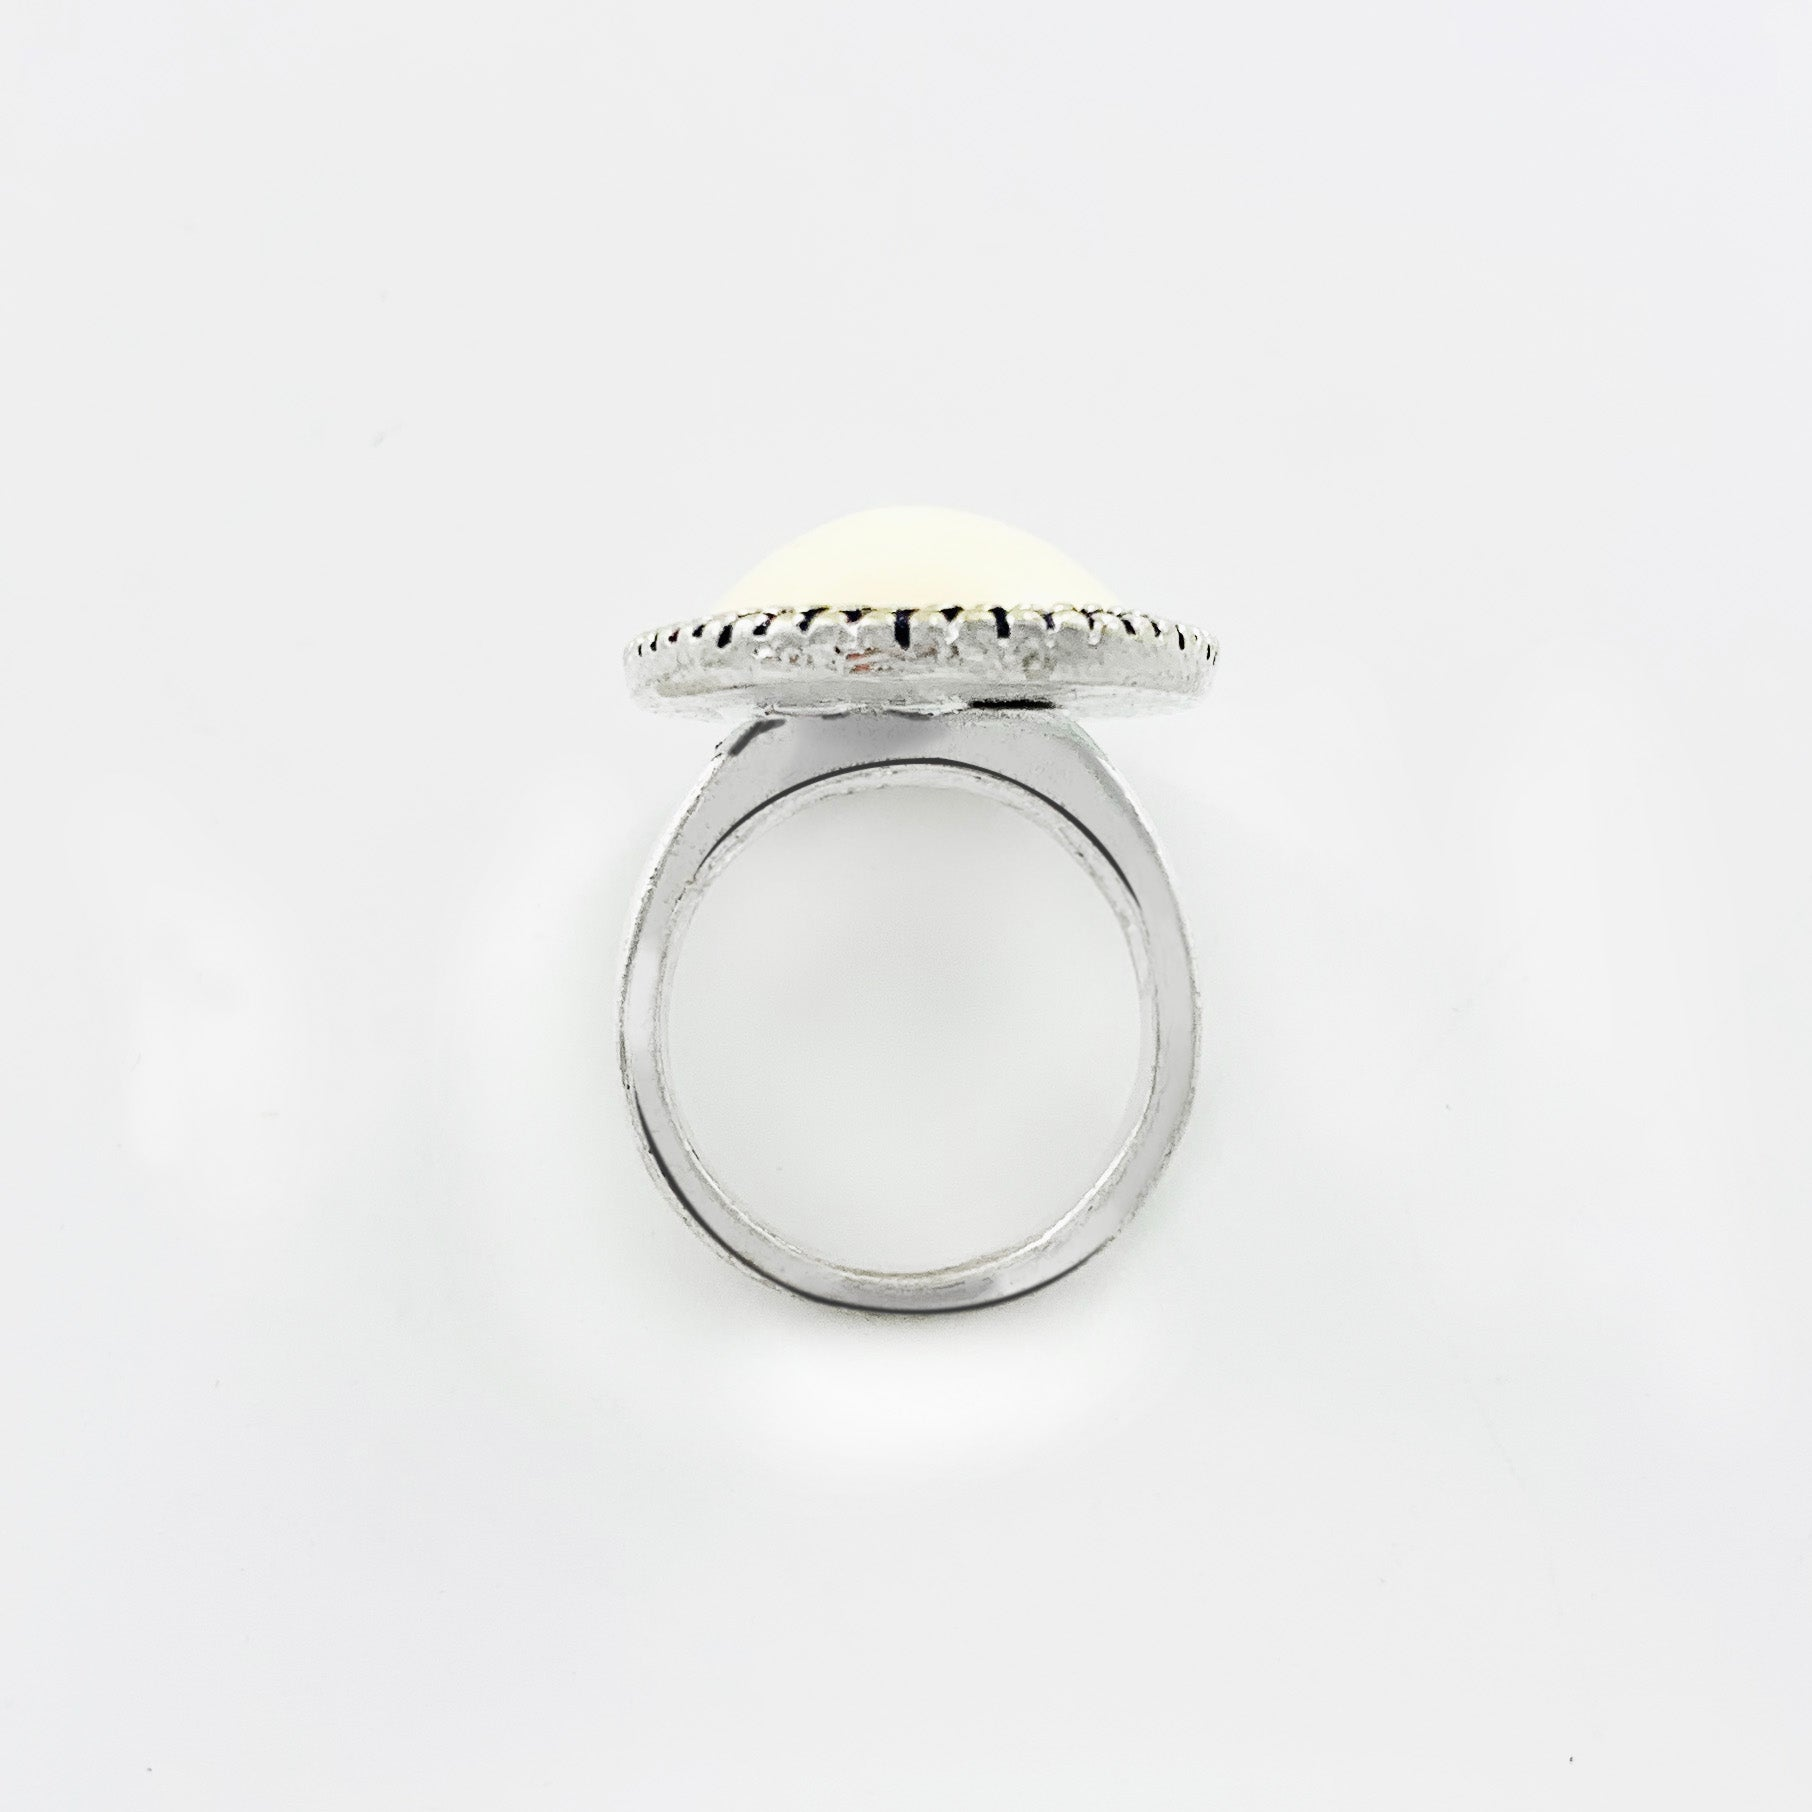 Silver ring with large ivory-coloured stone